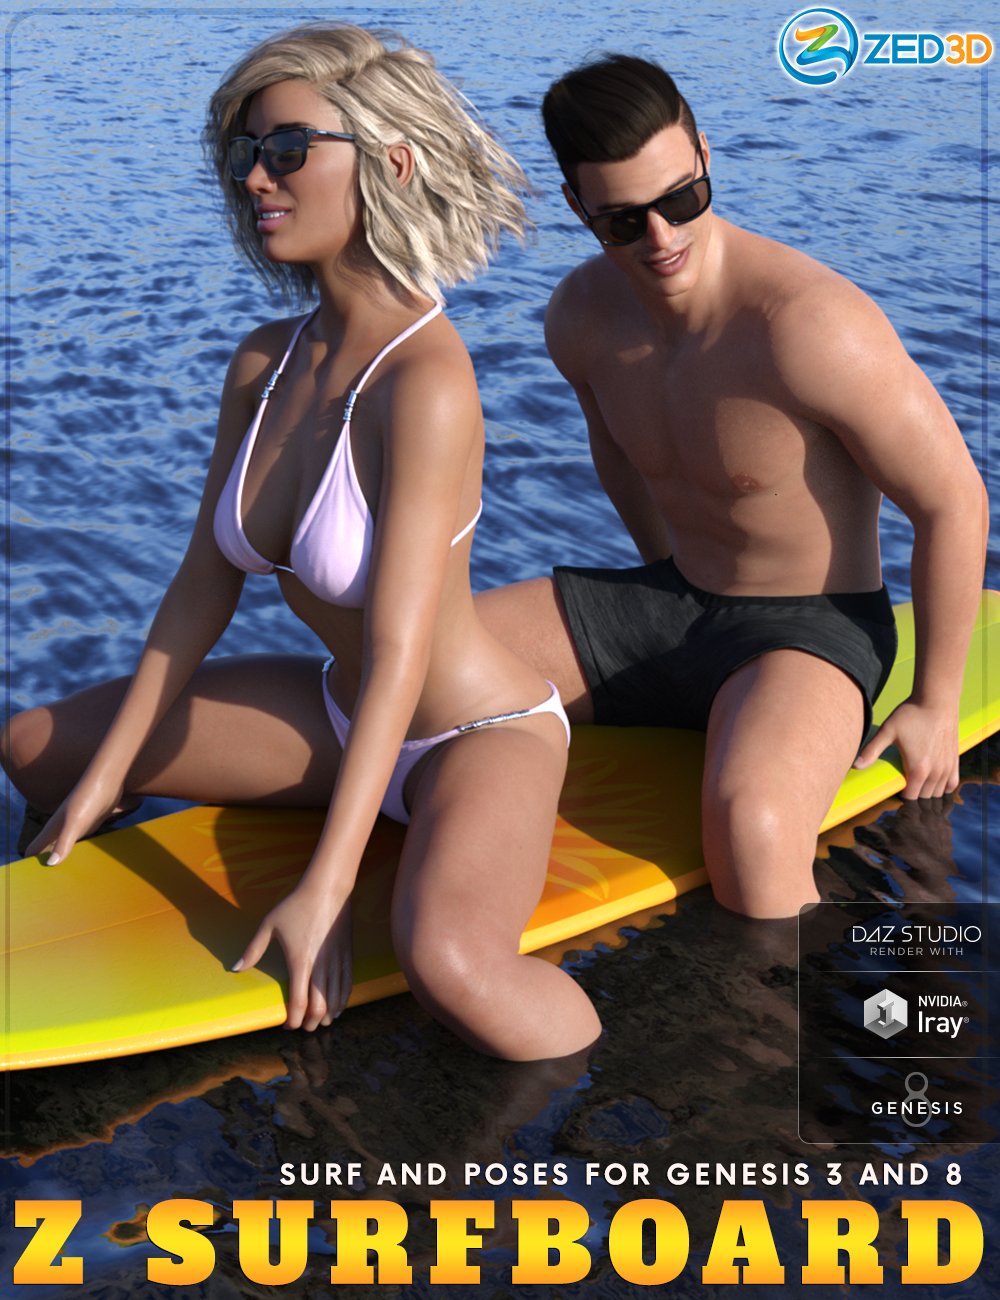 Z Surfboard and Poses for Genesis 3 and 8 by: Zeddicuss, 3D Models by Daz 3D